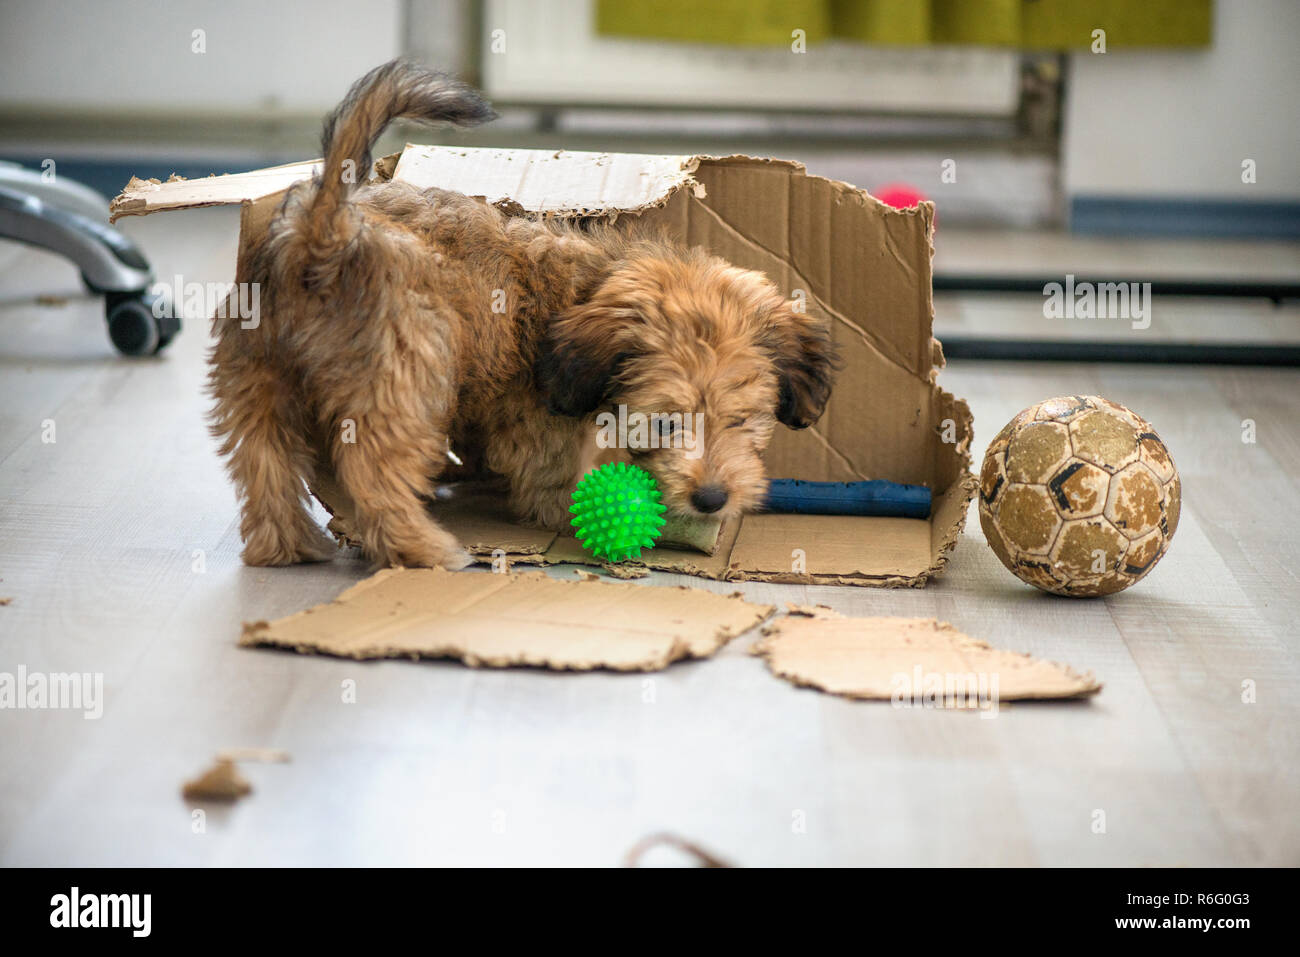 Naughty dog left home alone, sitting in the middle of mess on the floor. Disobedient dog with bad behavior. Puppy chews everything while teeth are gro Stock Photo